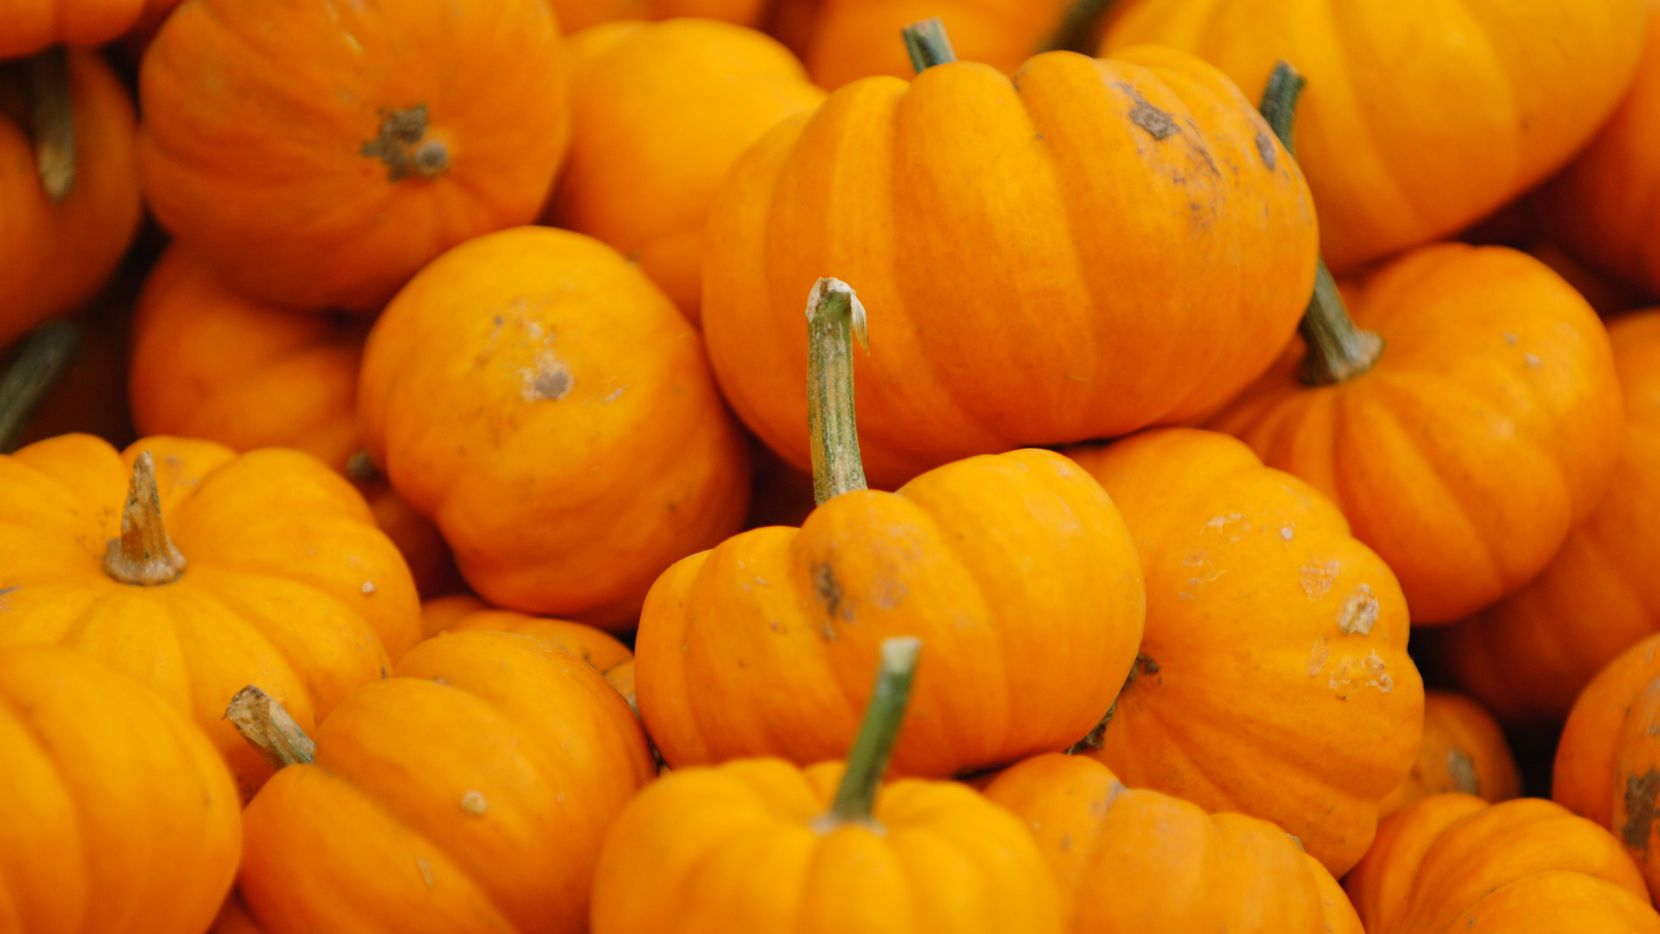 A trough of mini pumpkins for sale at the Flower Mound Pumpkin Patch